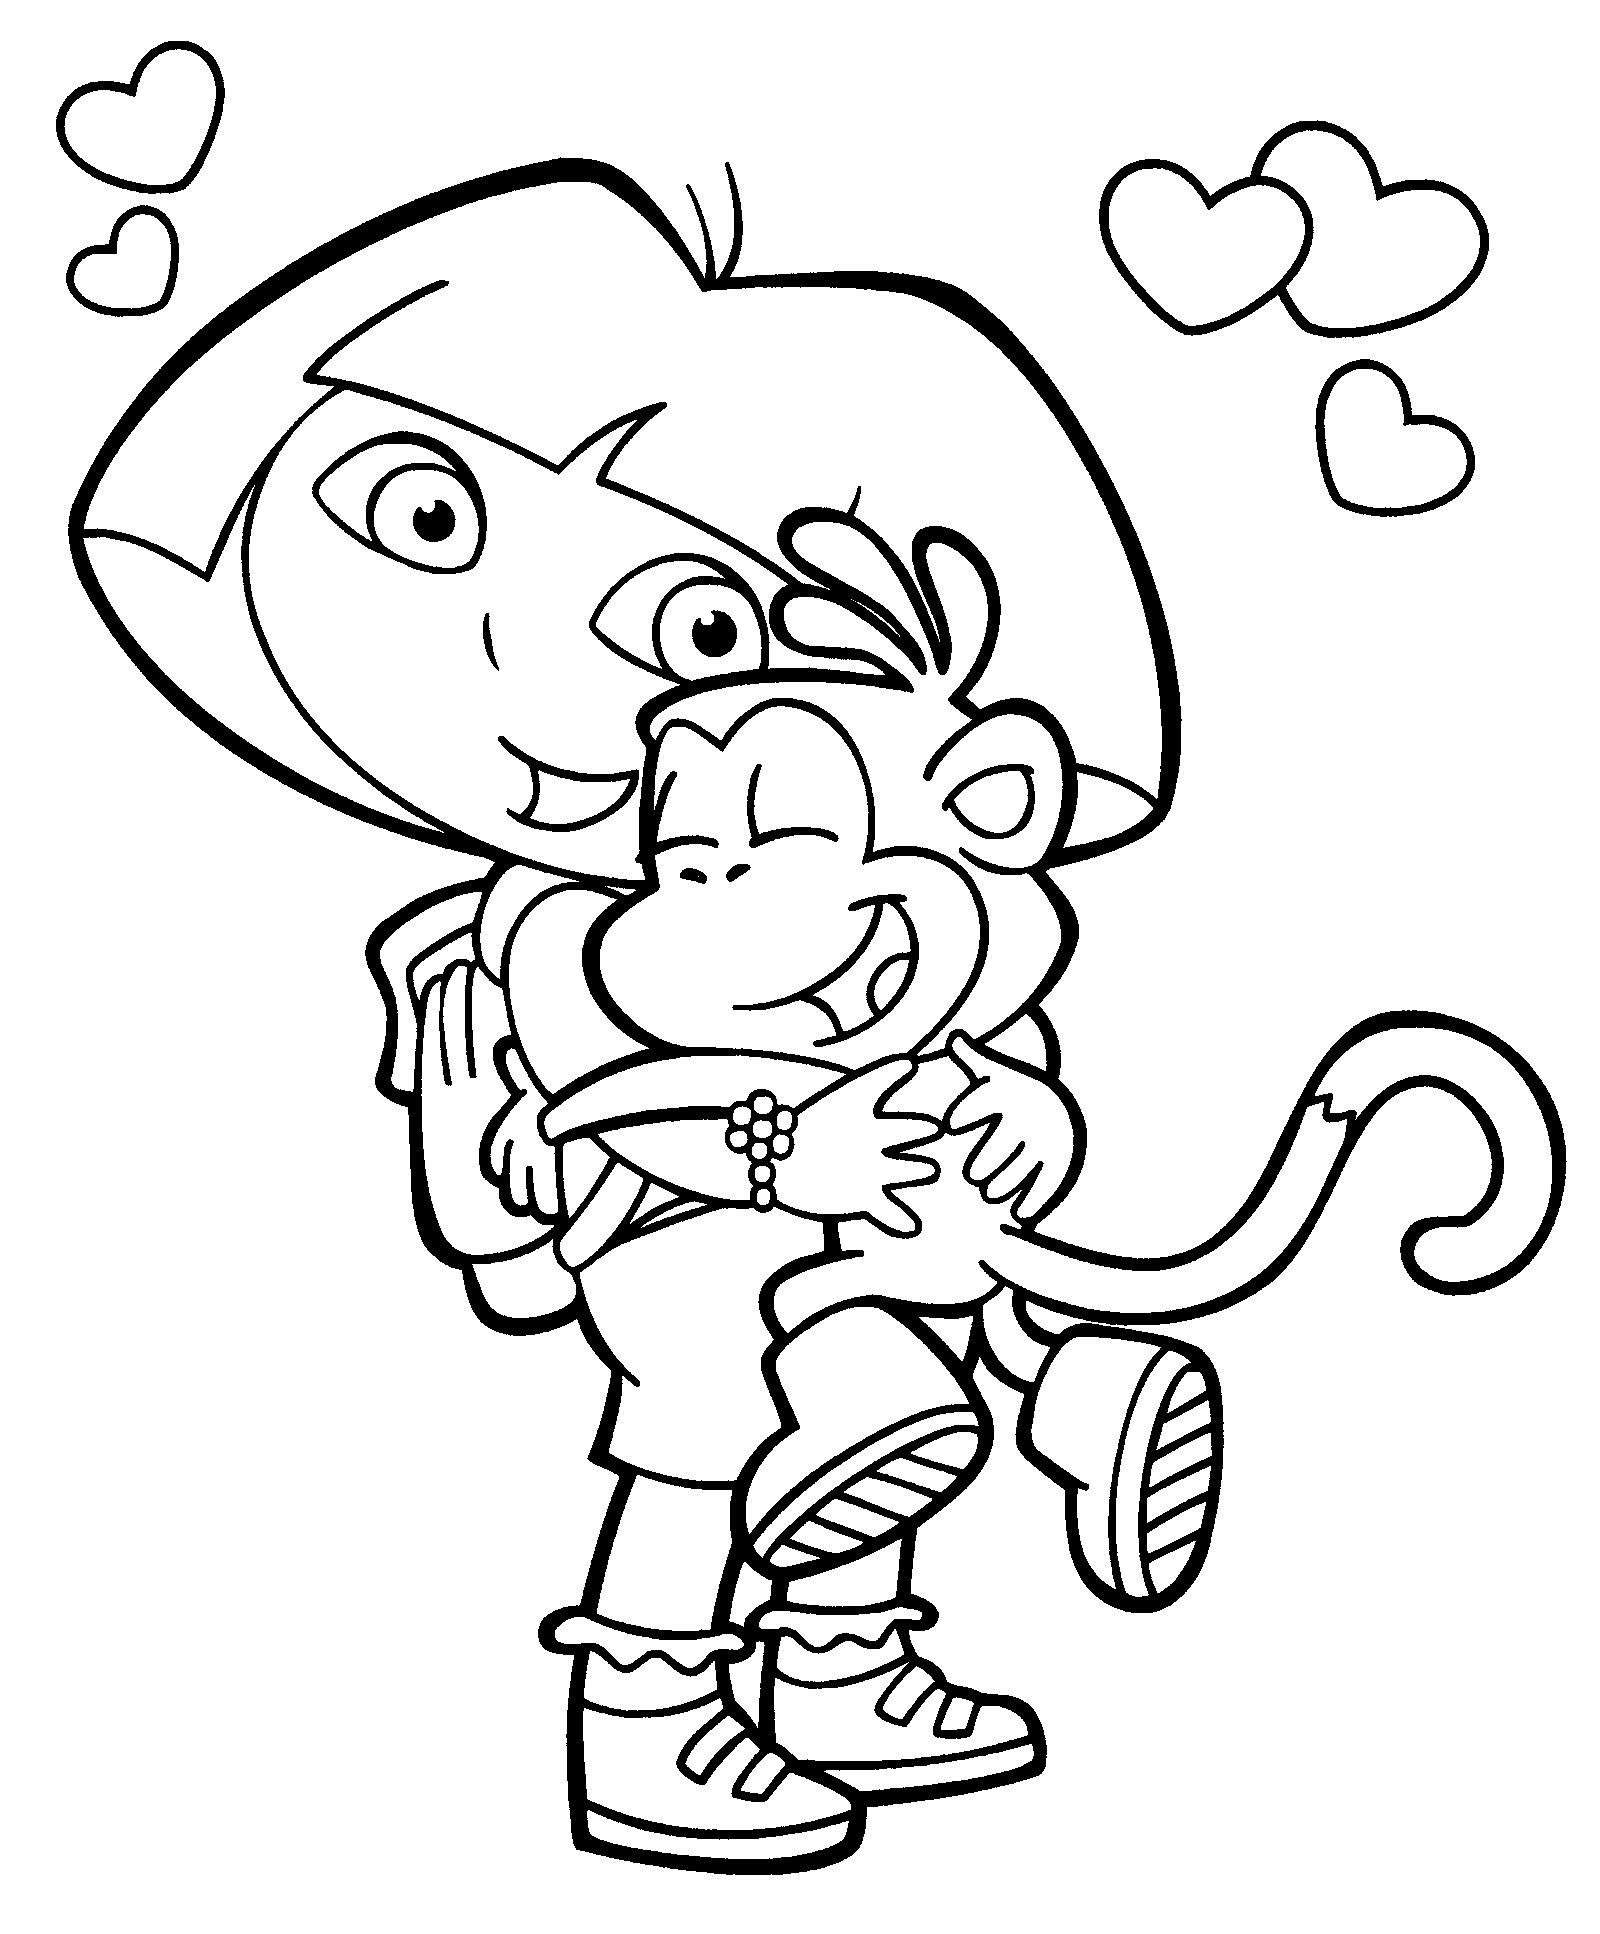 download dora the explorer coloring pages 8 print - Dora The Explorer Pictures To Color And Print